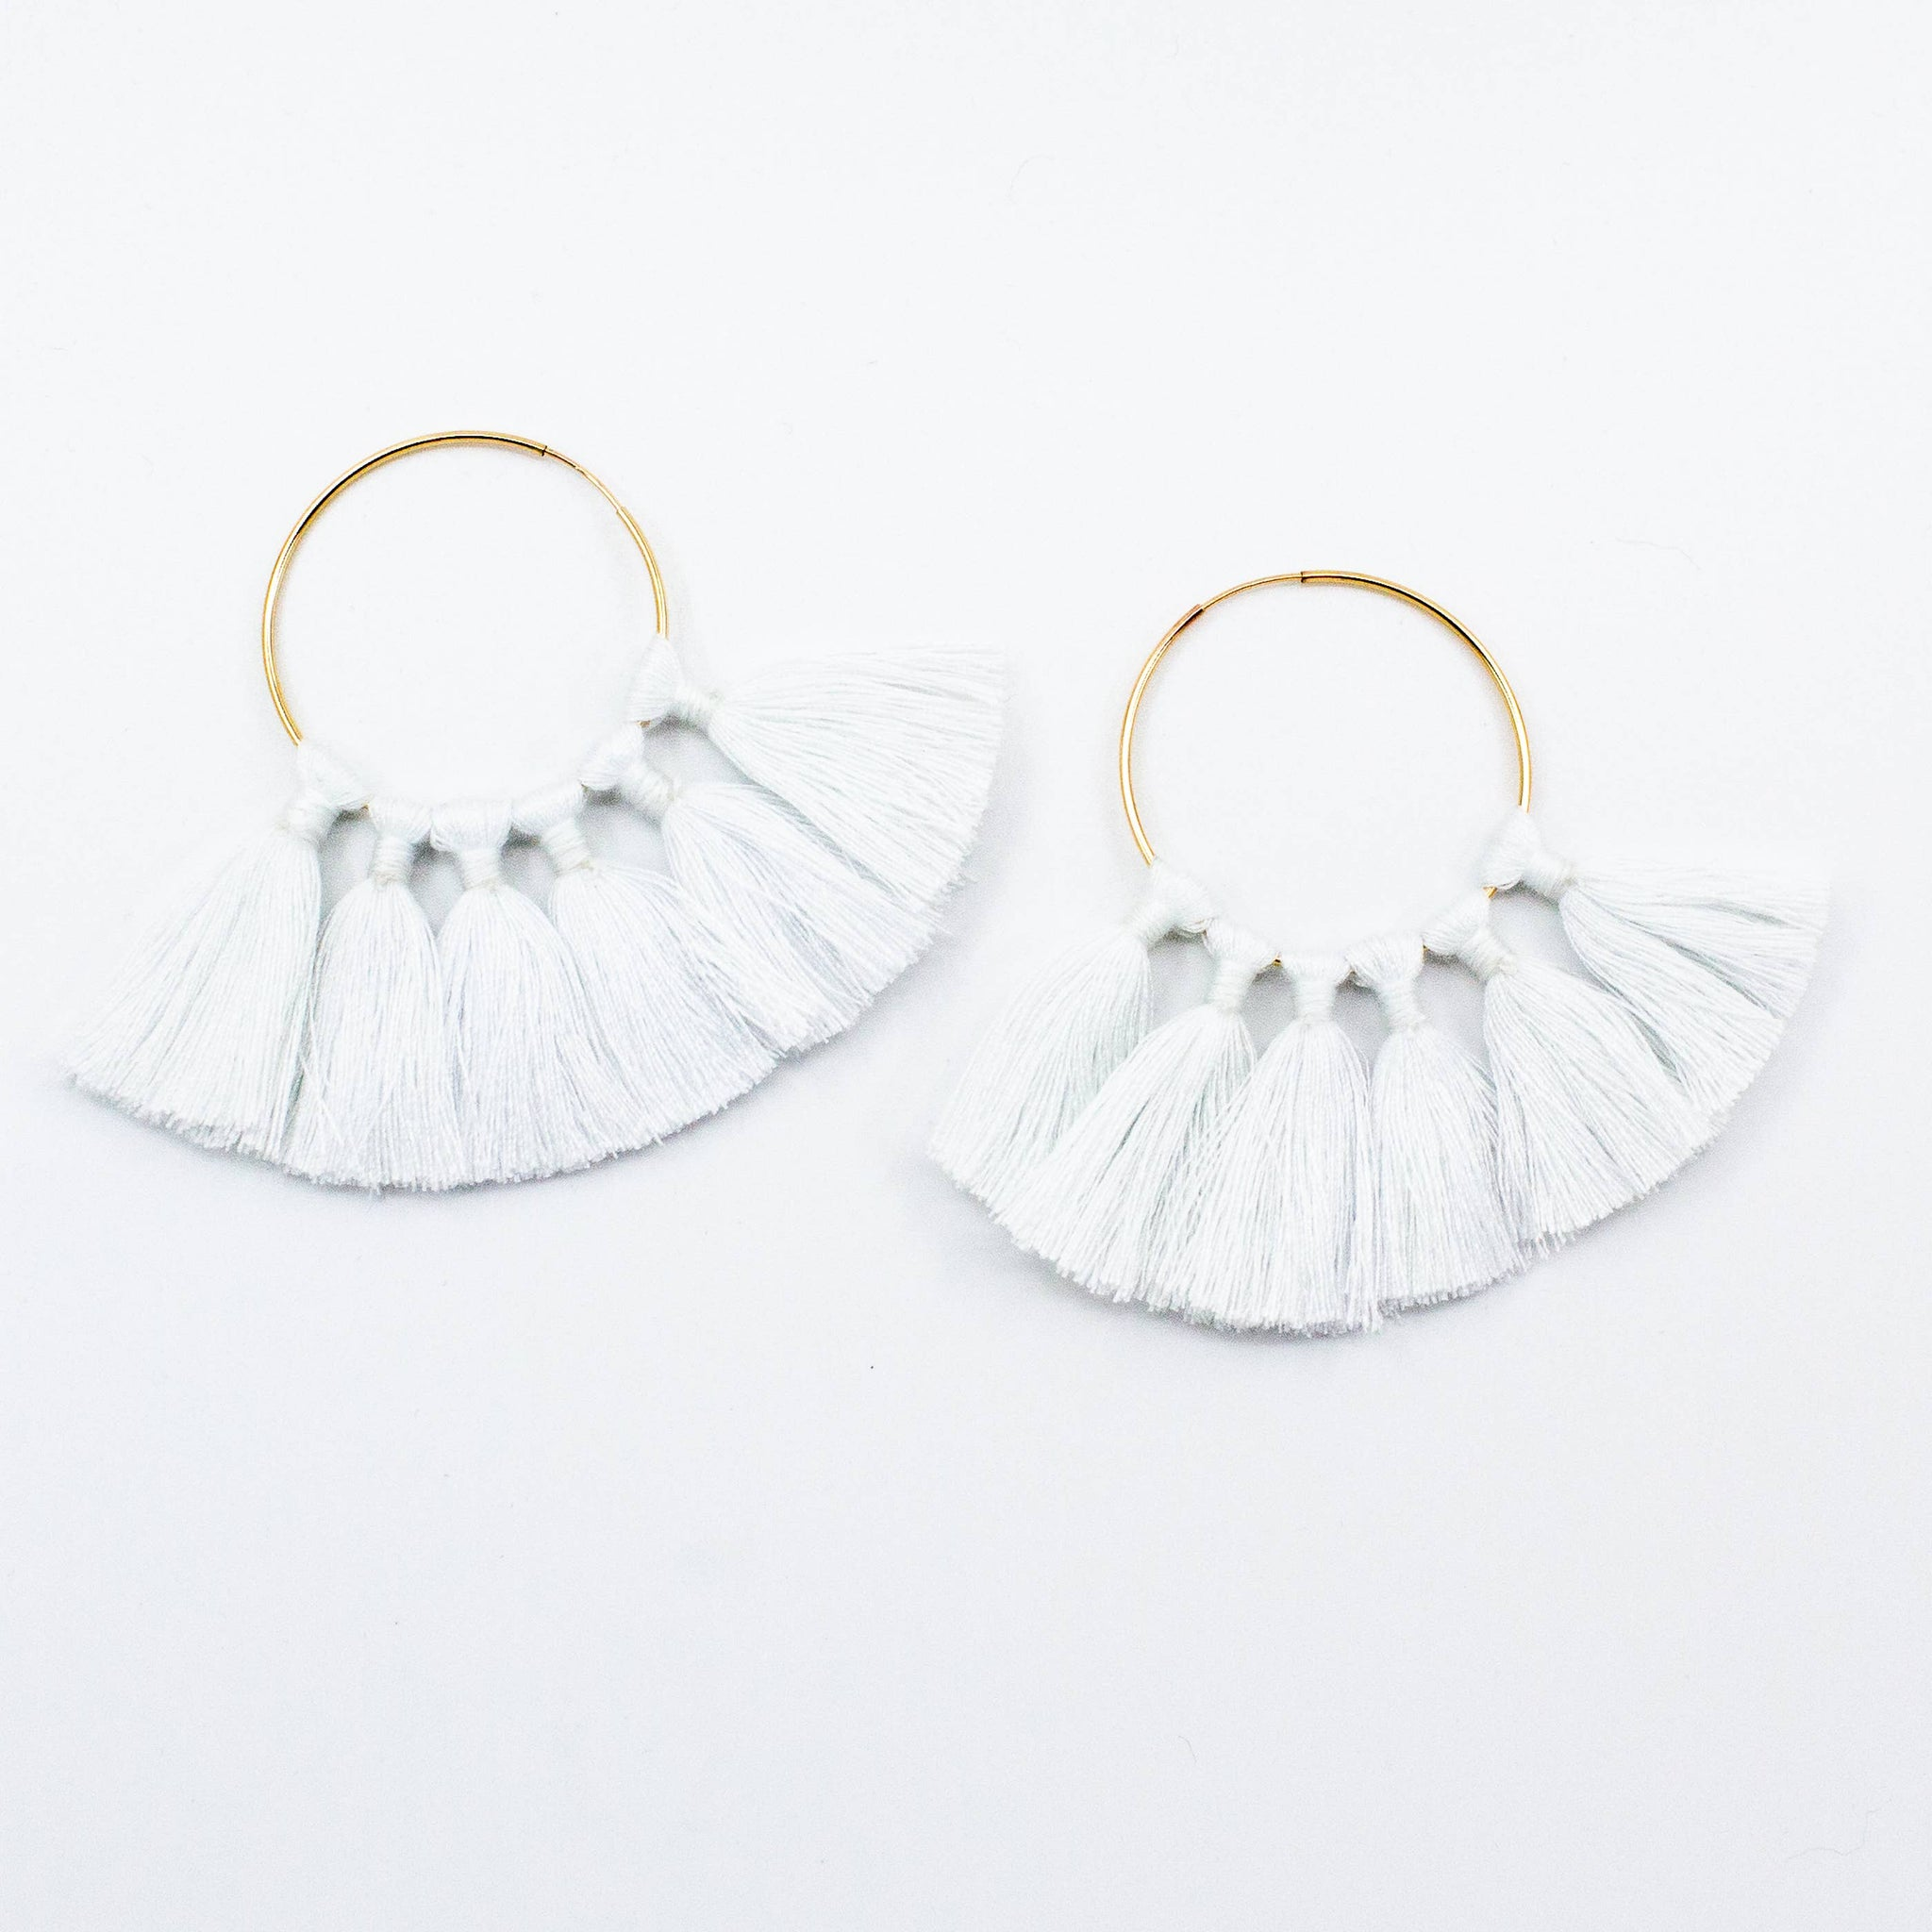 The Tassel Hoop Earrings - White